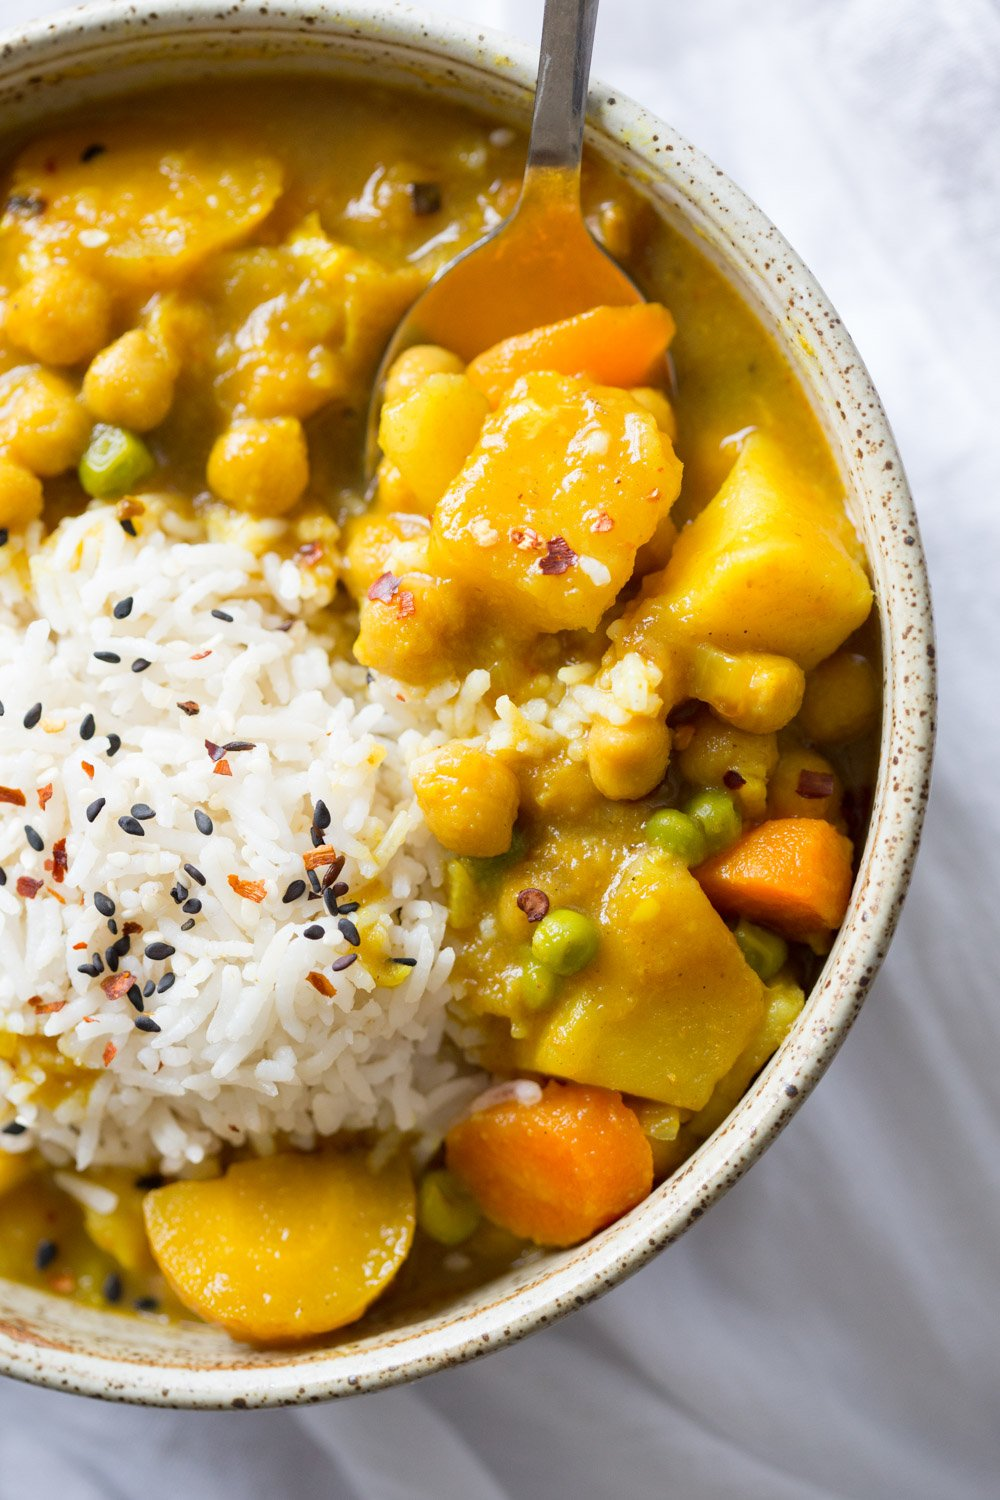 Vegan Japanese Curry made in Instant Pot Pressure cooker. Flavorful, Comforting, Vegetable Rich Curry for Weekday Dinner. Saucepan Option. #Vegan, #veganricha #glutenfree, #nutfree #Recipe. Can be #soyfree | VeganRicha.com